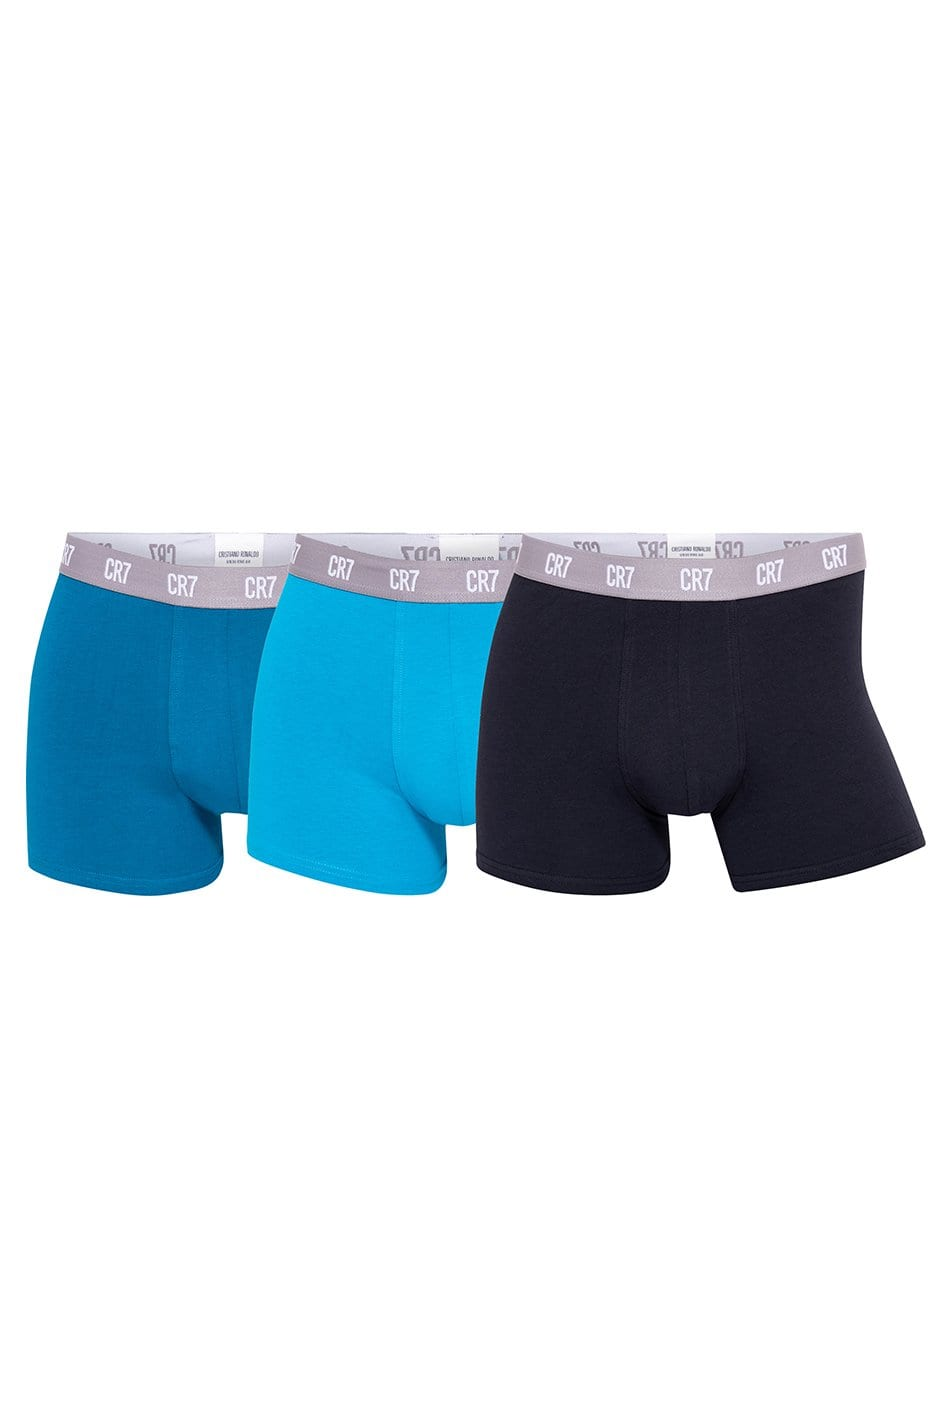 CR7 3 Pack Cotton Trunk